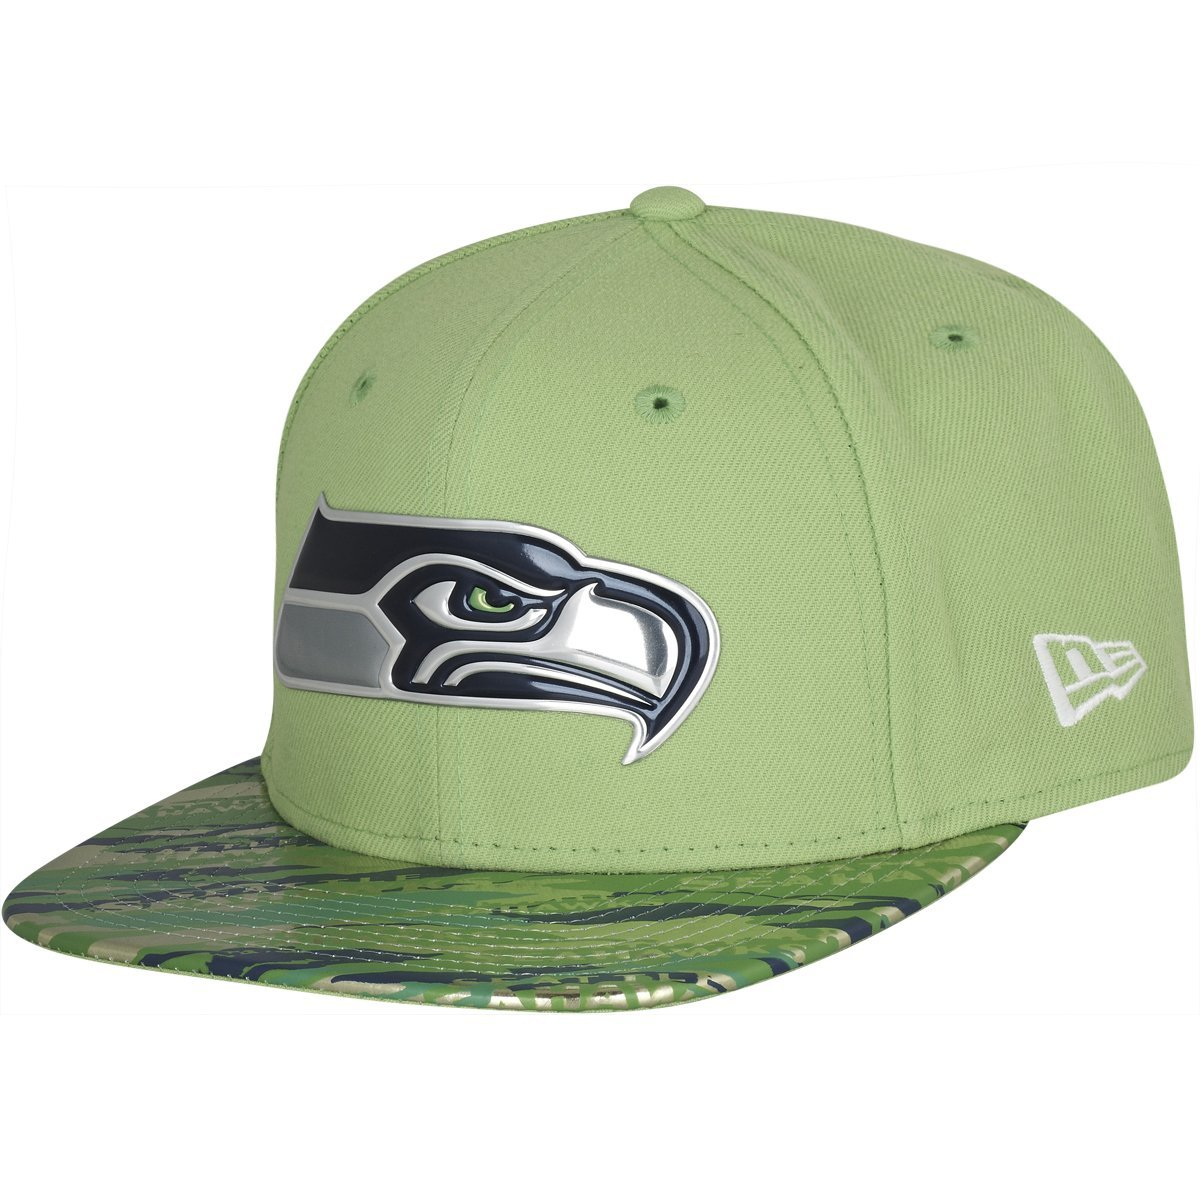 Amazon.com   New Era 9Fifty Hat Seattle Seahawks NFL 2016 On Field Color  Rush Green Snapback   Sports   Outdoors 5dced0d58